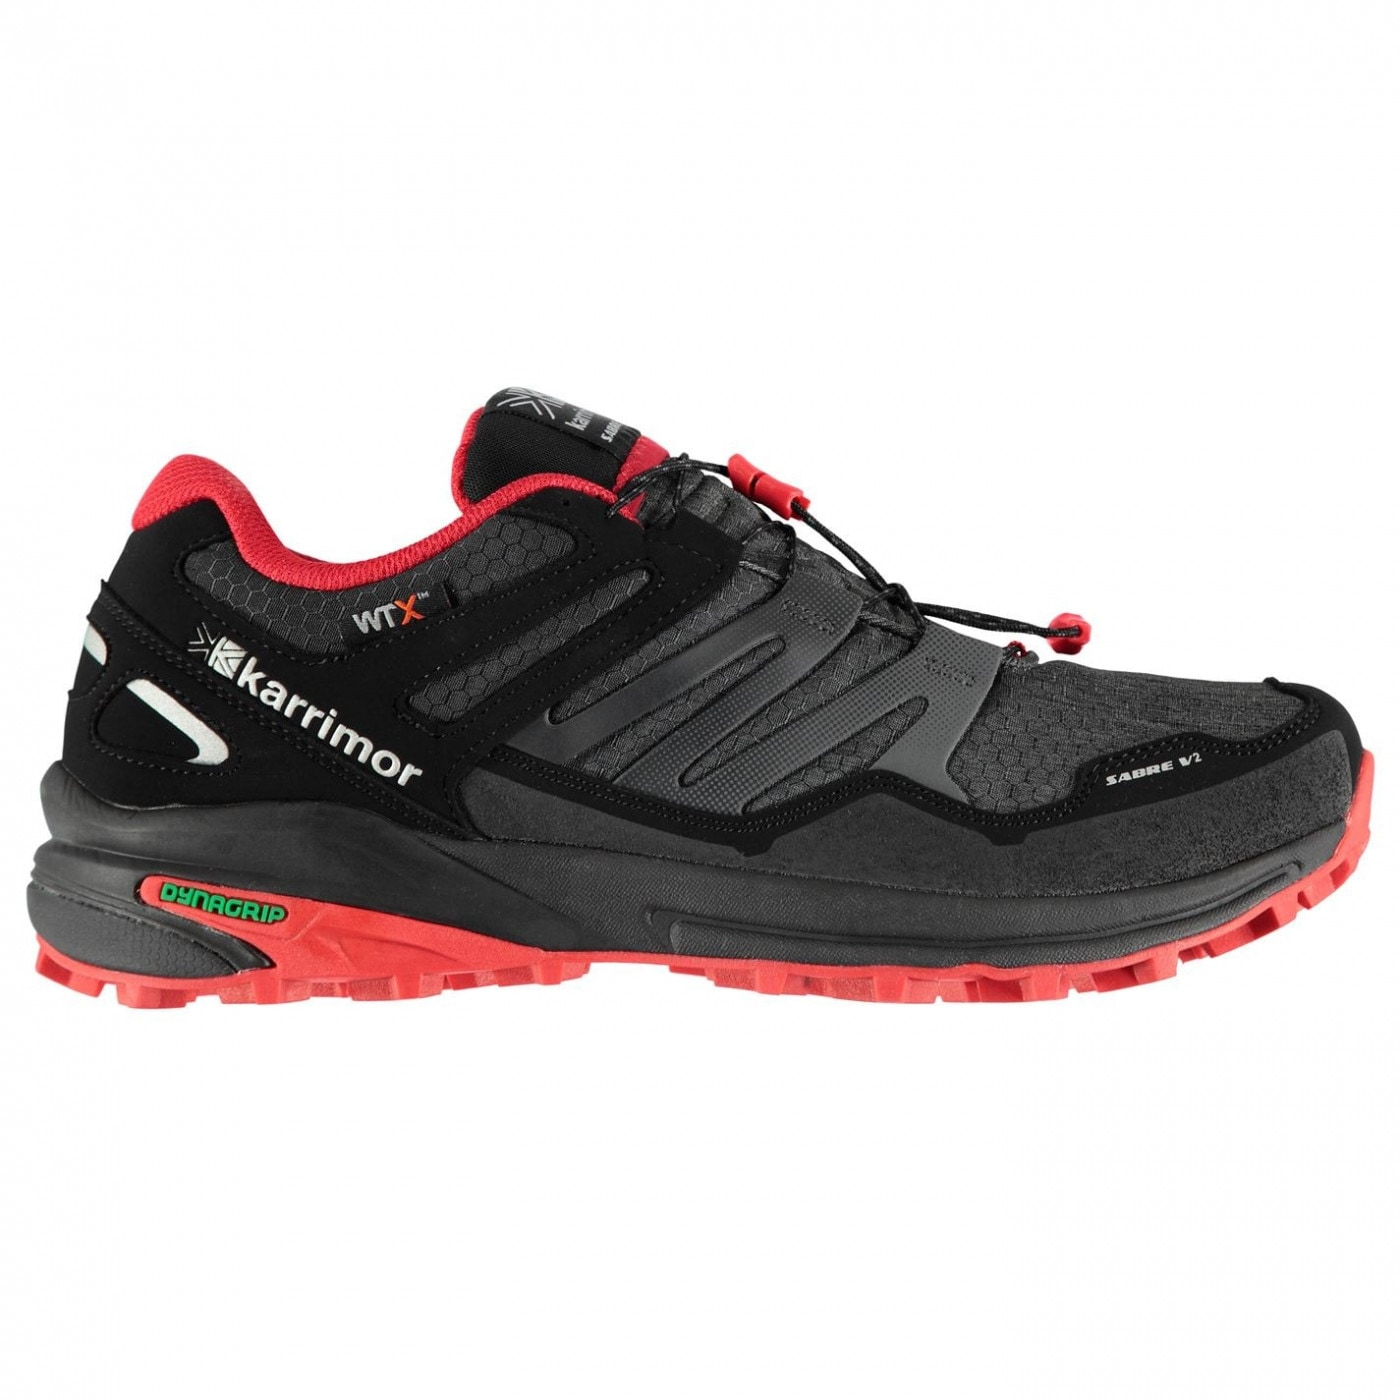 Men's shoes Karrimor Running